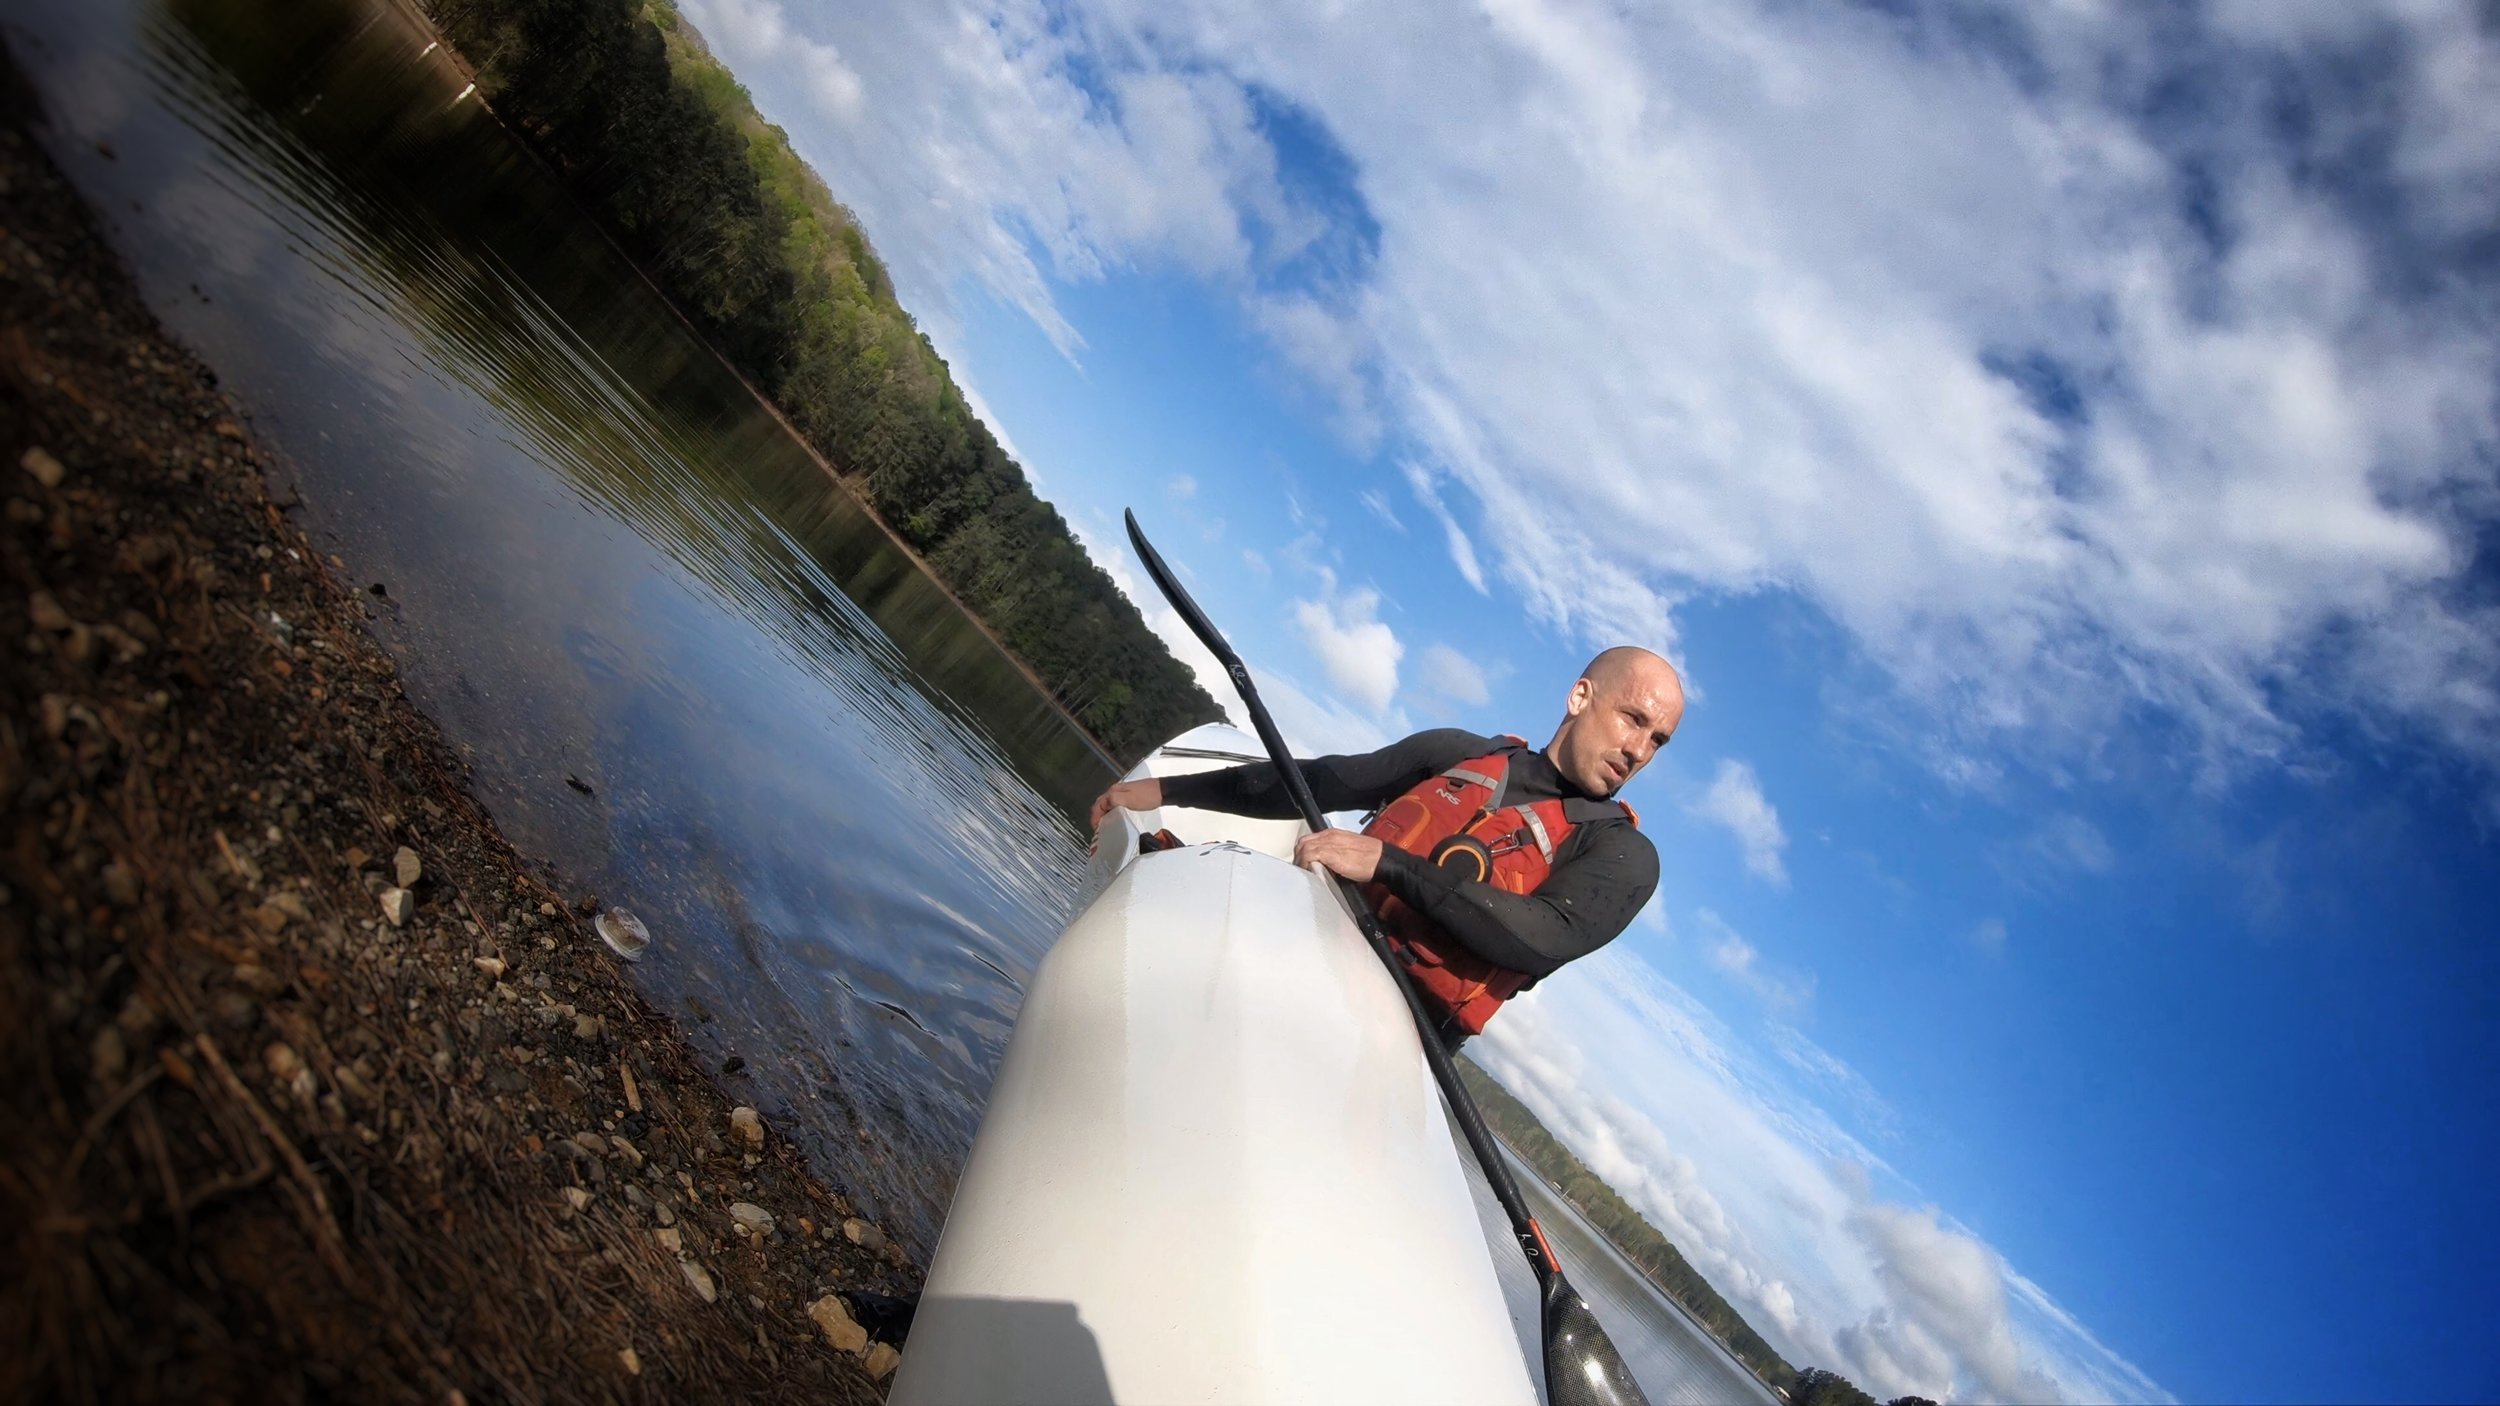 Joshua Carrying the V10 Surfski